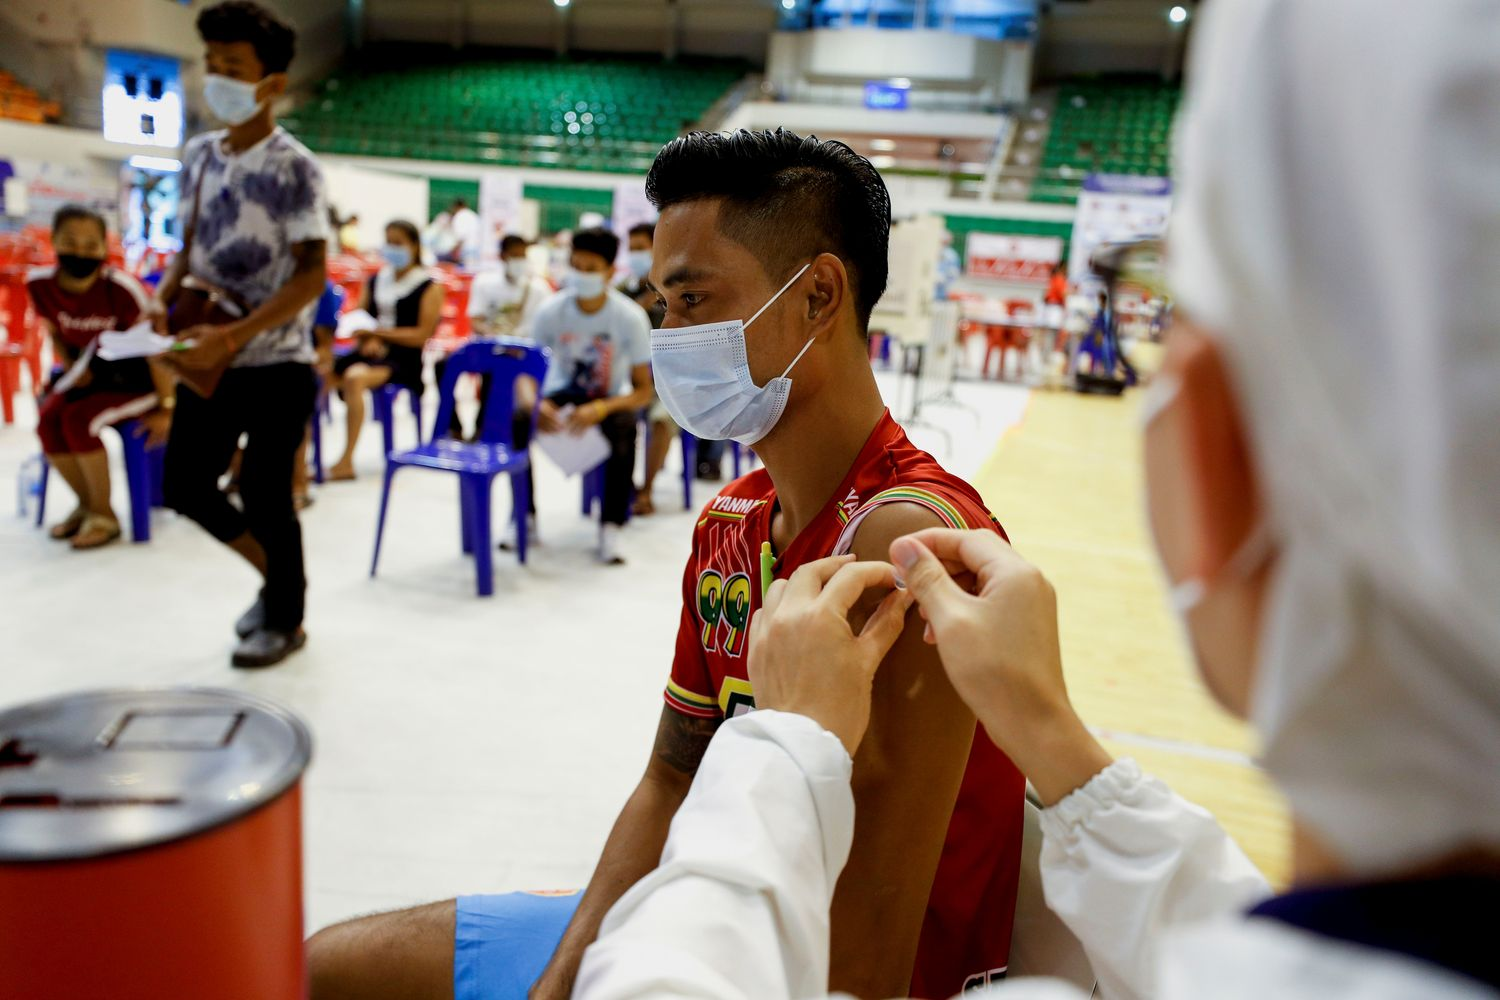 A member of the armed forces in parliament receives the AstraZeneca Covishield coronavirus vaccine in Naypyitaw, Myanmar, on Jan 30 this year. (Reuters photo)